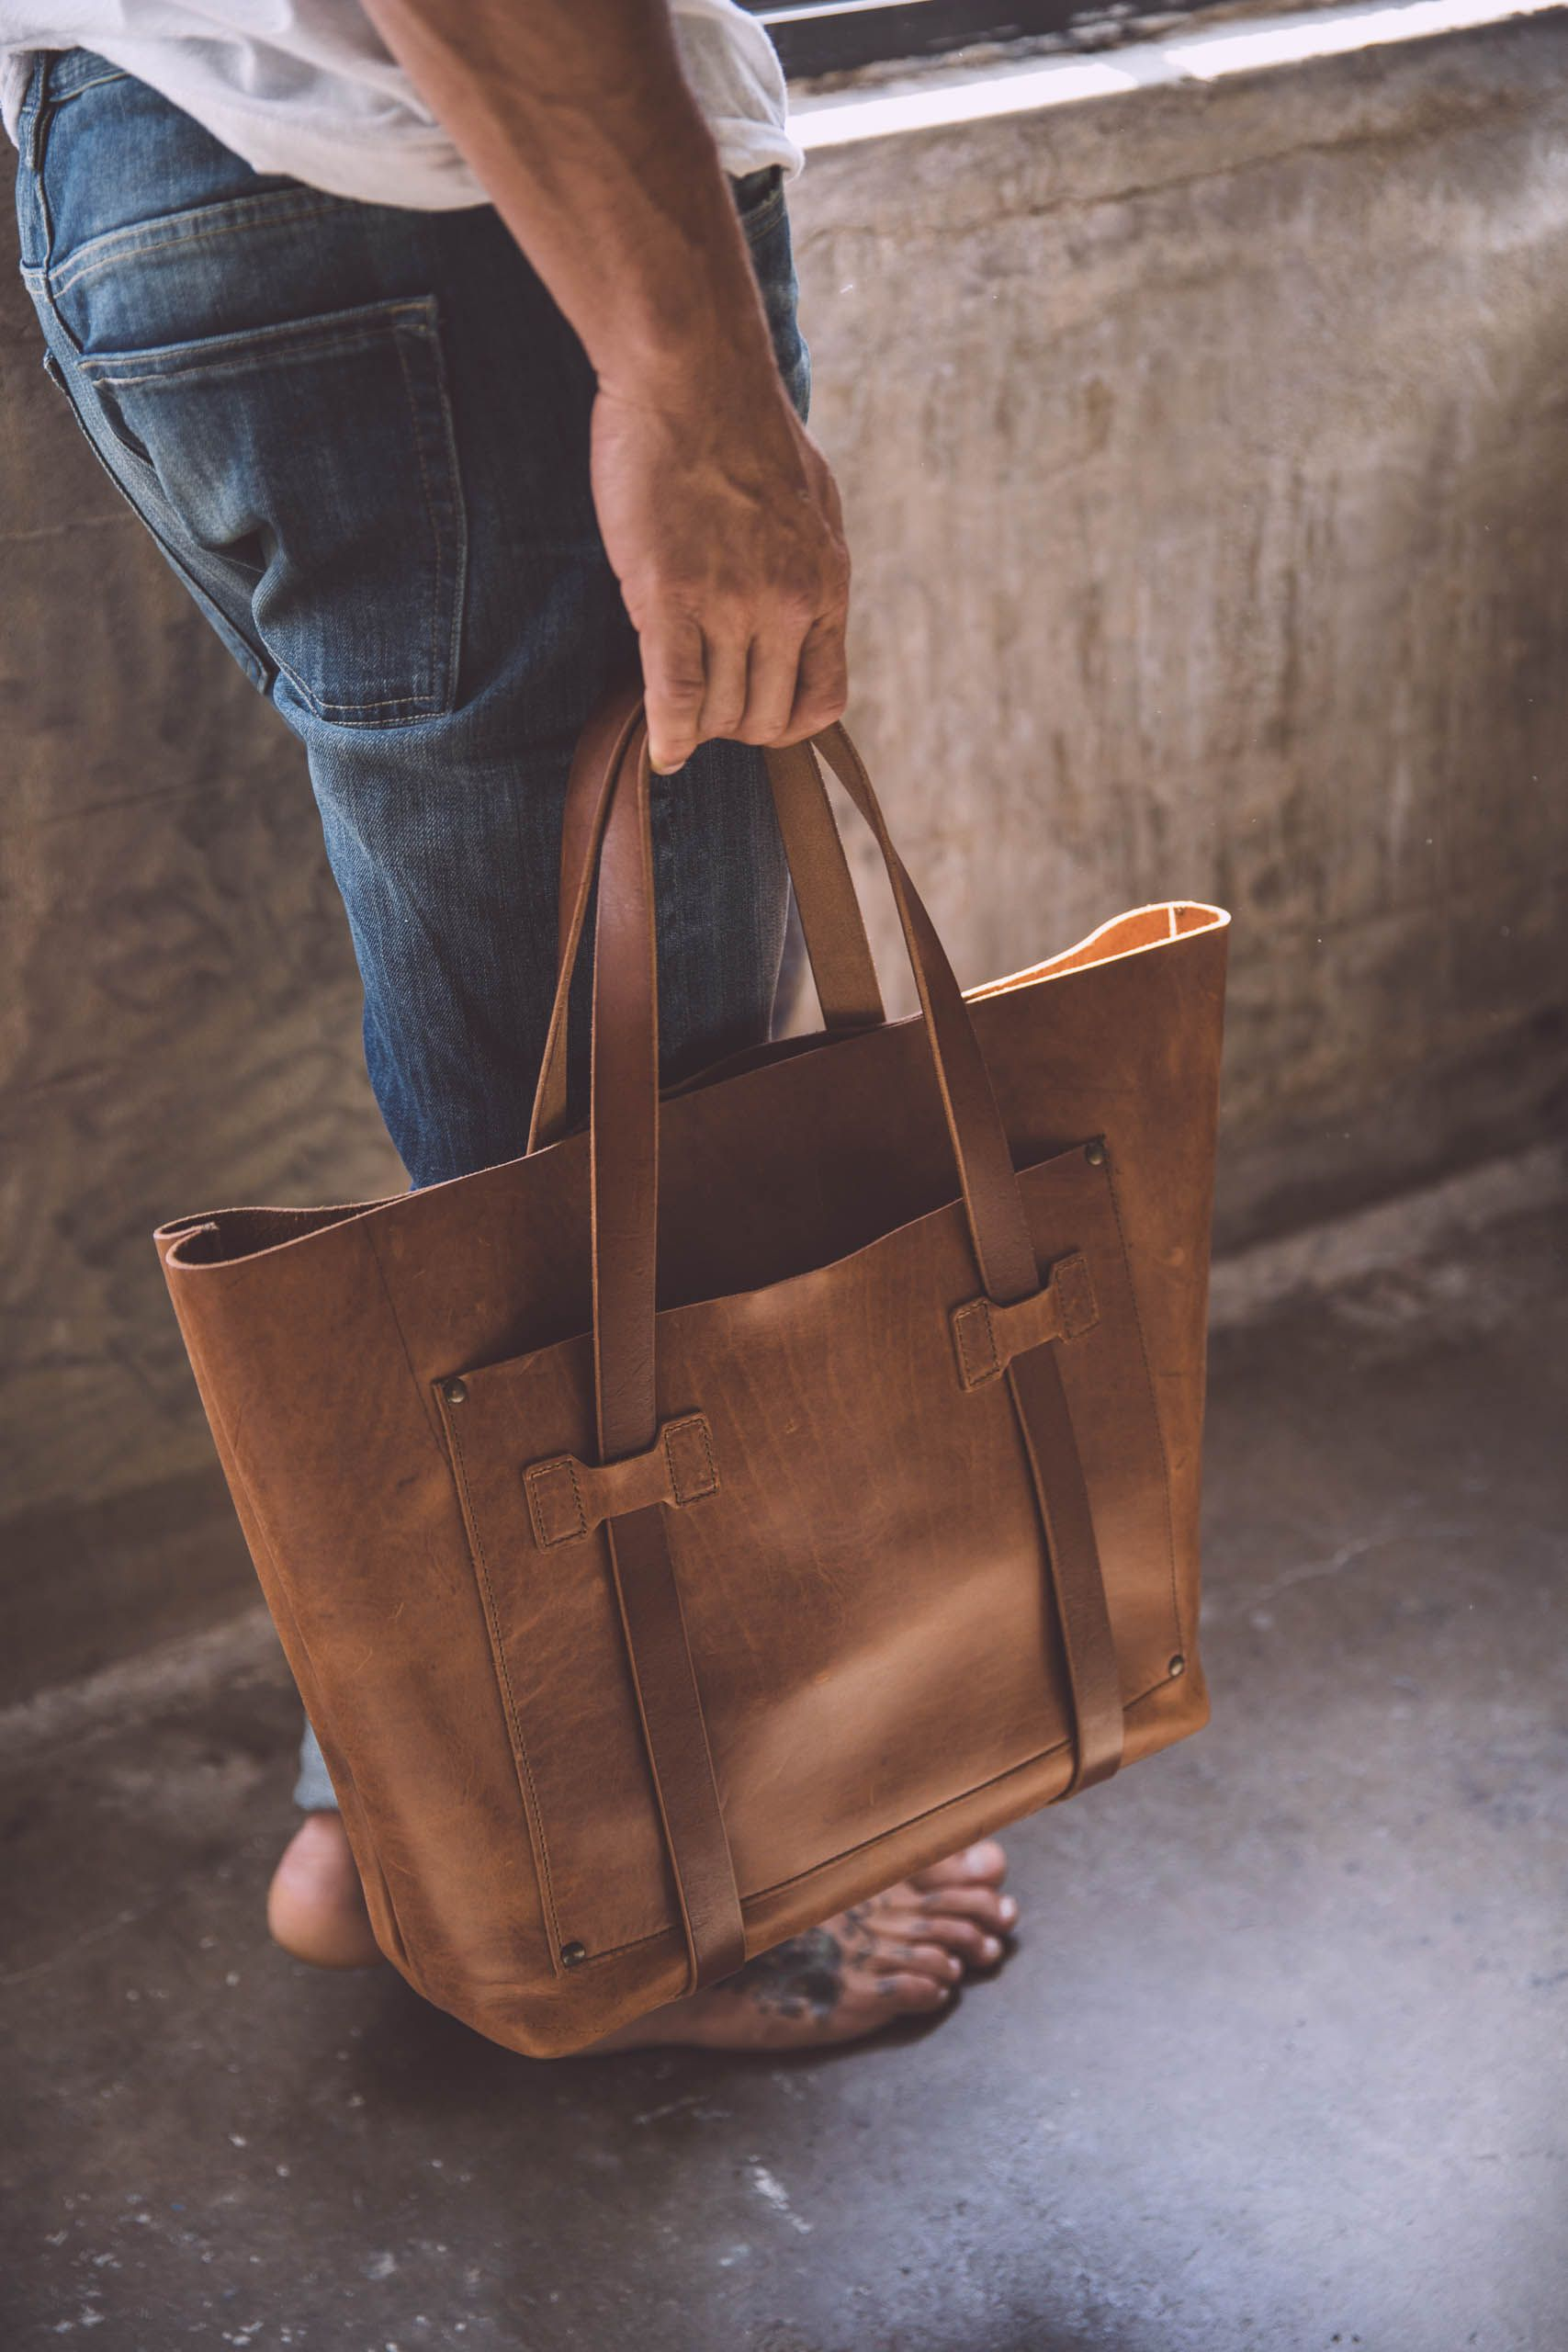 36f4ef388 Cargo Tote Bag | Leather Bags and Accessories - WP Standard | Bags ...